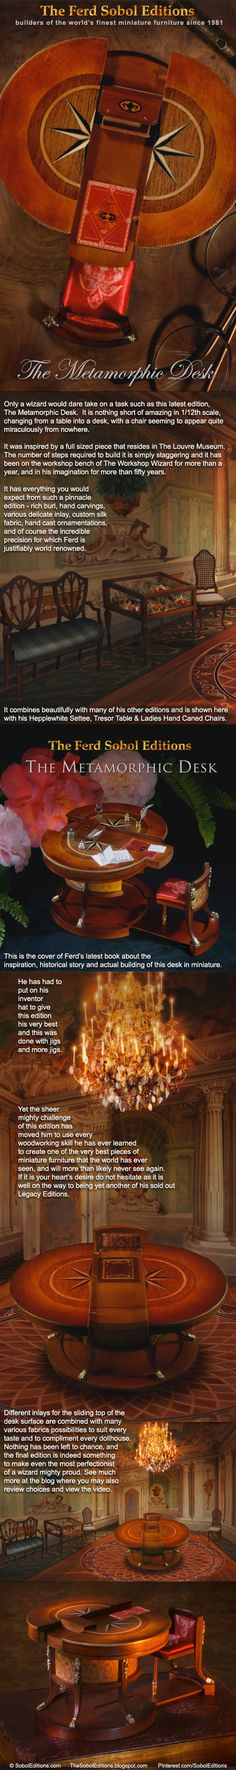 The Metamorphic Desk is the latest piece from the Ferd Sobol Editions and may be reviewed in a recent article in Dollhouse Miniatures magazine where you will see that it was first commissioned in 1805 by The Grand Duchess of Tuscany, Elisa Bonaparte, the sister of Napoleon: http://thesoboleditions.blogspot.com/2017/04/metamorphic-desk-article-in-dollhouse.html You may also view a video of it transforming at: https://www.youtube.com/watch?v=ZH1K0LdPqxQ&feature=youtu.be SobolEditions.com